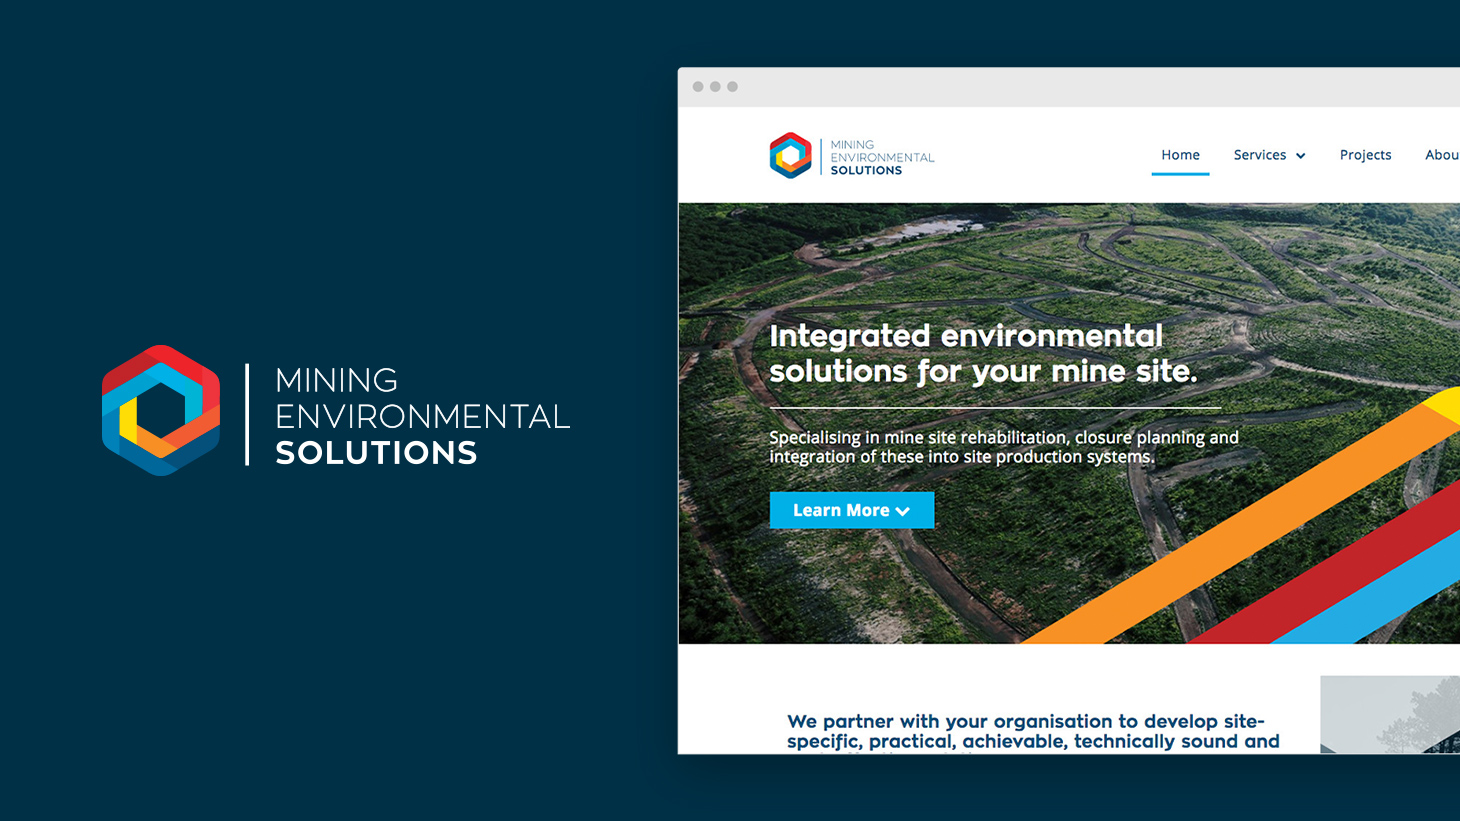 Mining Environmental Solutions feature image